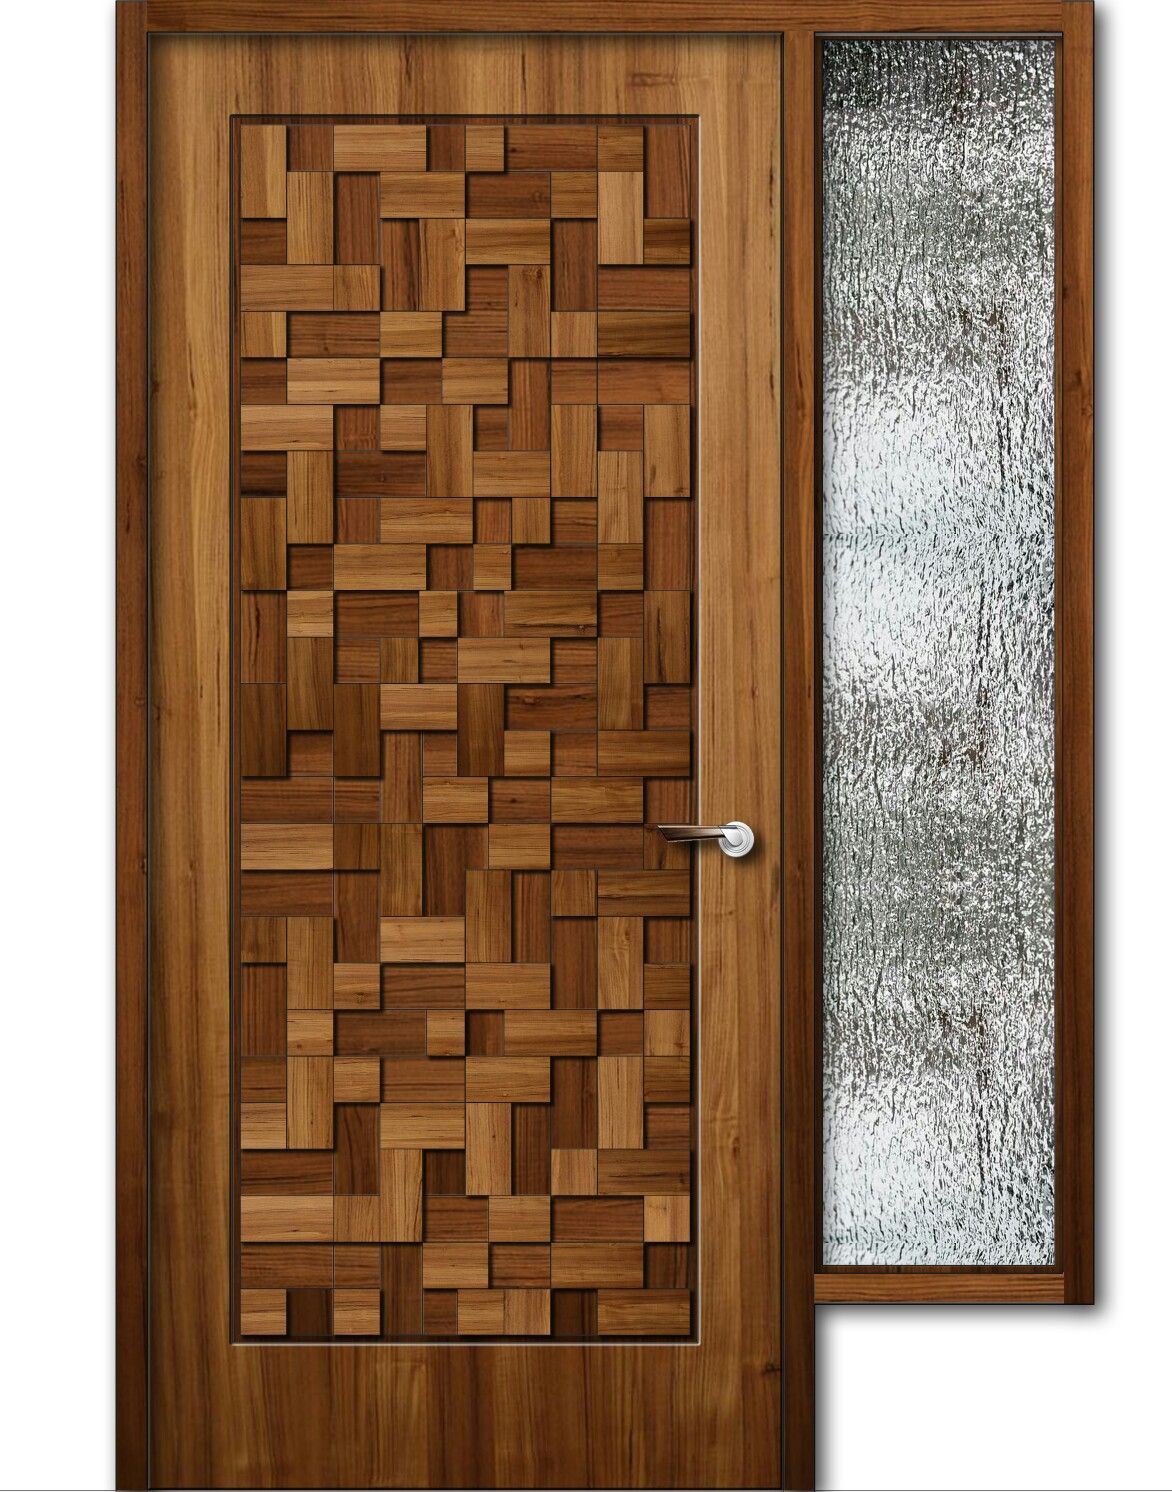 Teak wood finish wooden door with window 8feet height for Wooden main doors design pictures